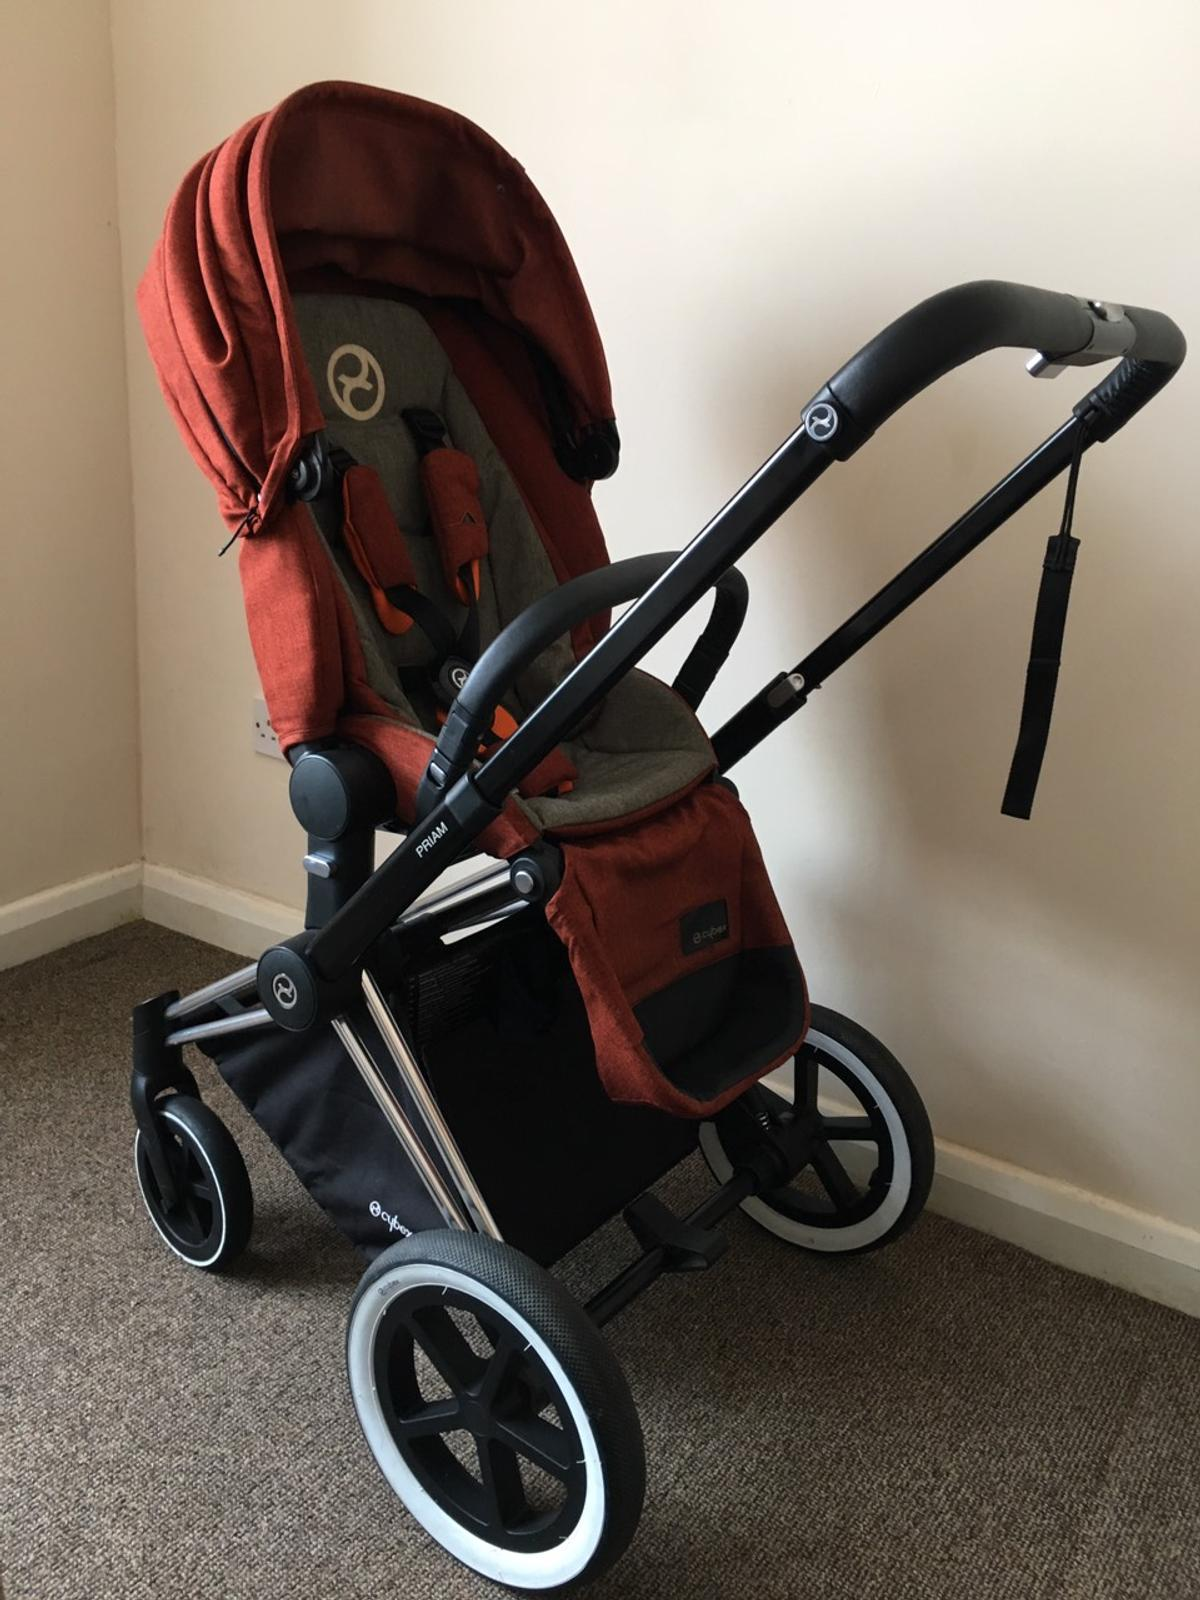 Cybex Platinum Priam Autumn Gold In Sl1 Slough For 550 00 For Sale